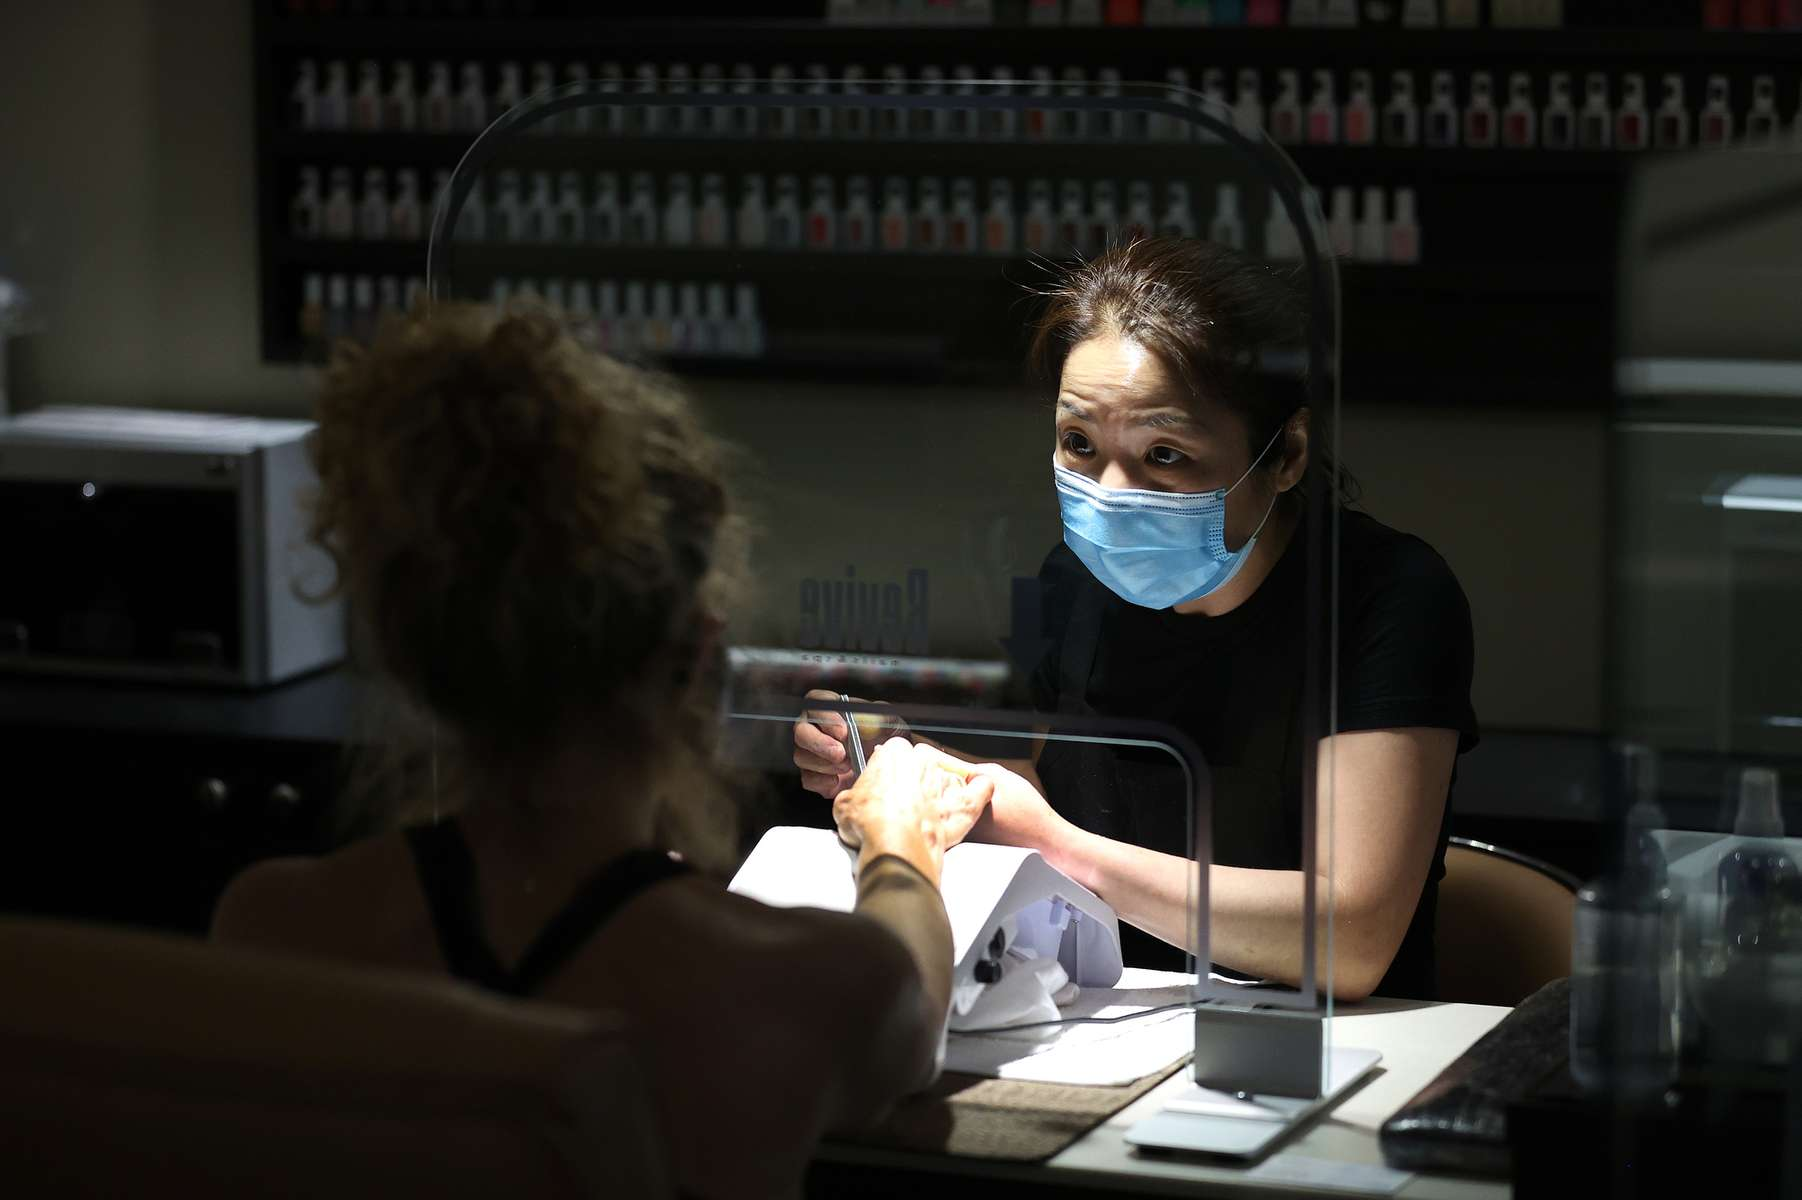 Vickie Lee does the nails of a customer at Revive Nails and Spa as Long Island begins Phase 3 of reopening, allowing restaurants To Seat Inside At 50 Percent Capacity and nail salons to open by appointment only on June 24, 2020 in Huntington, New York.